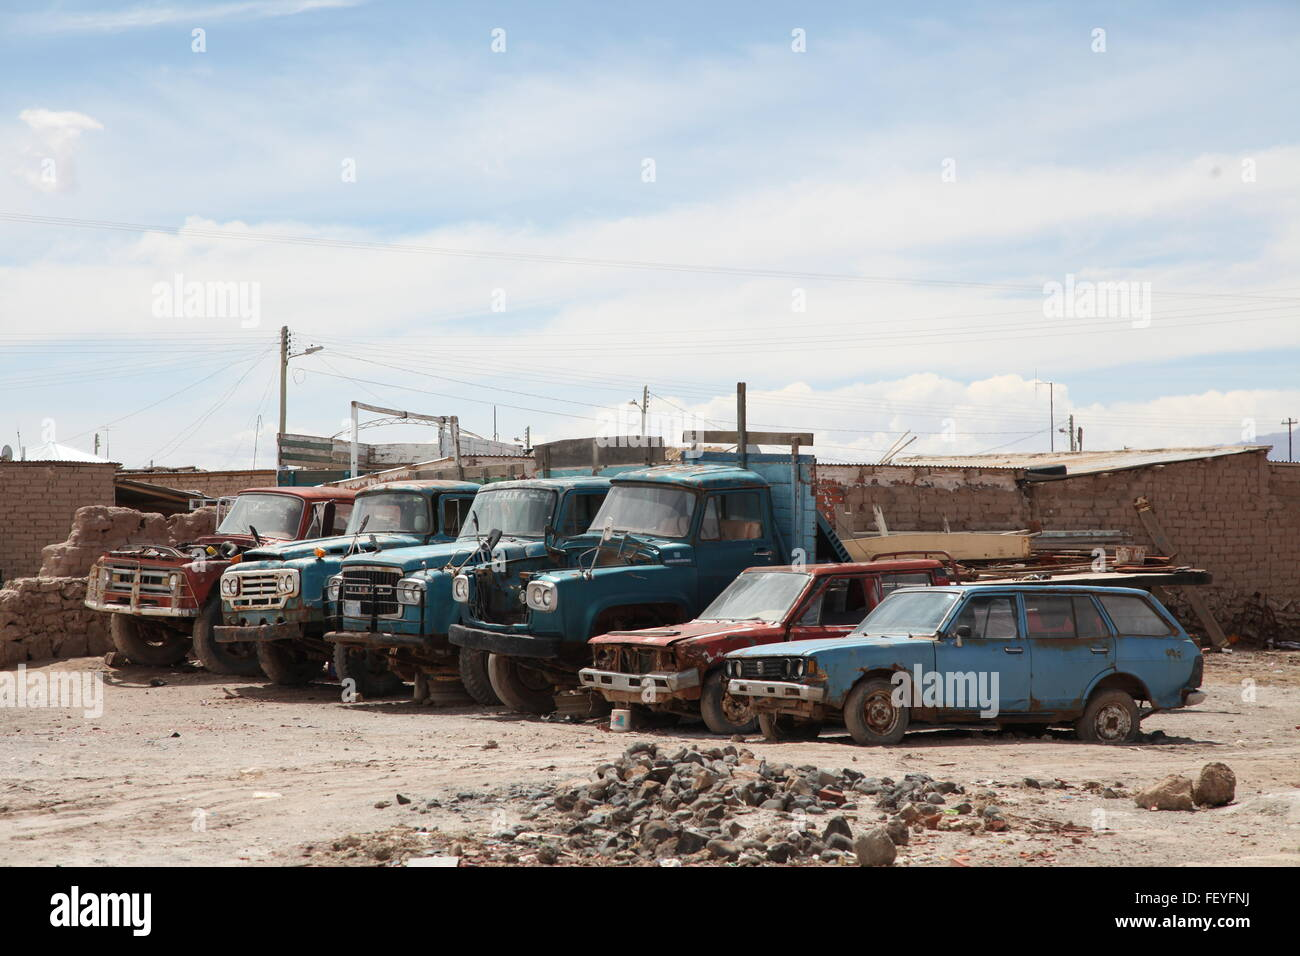 Vehicles In Junkyard Against Cloudy Sky - Stock Image